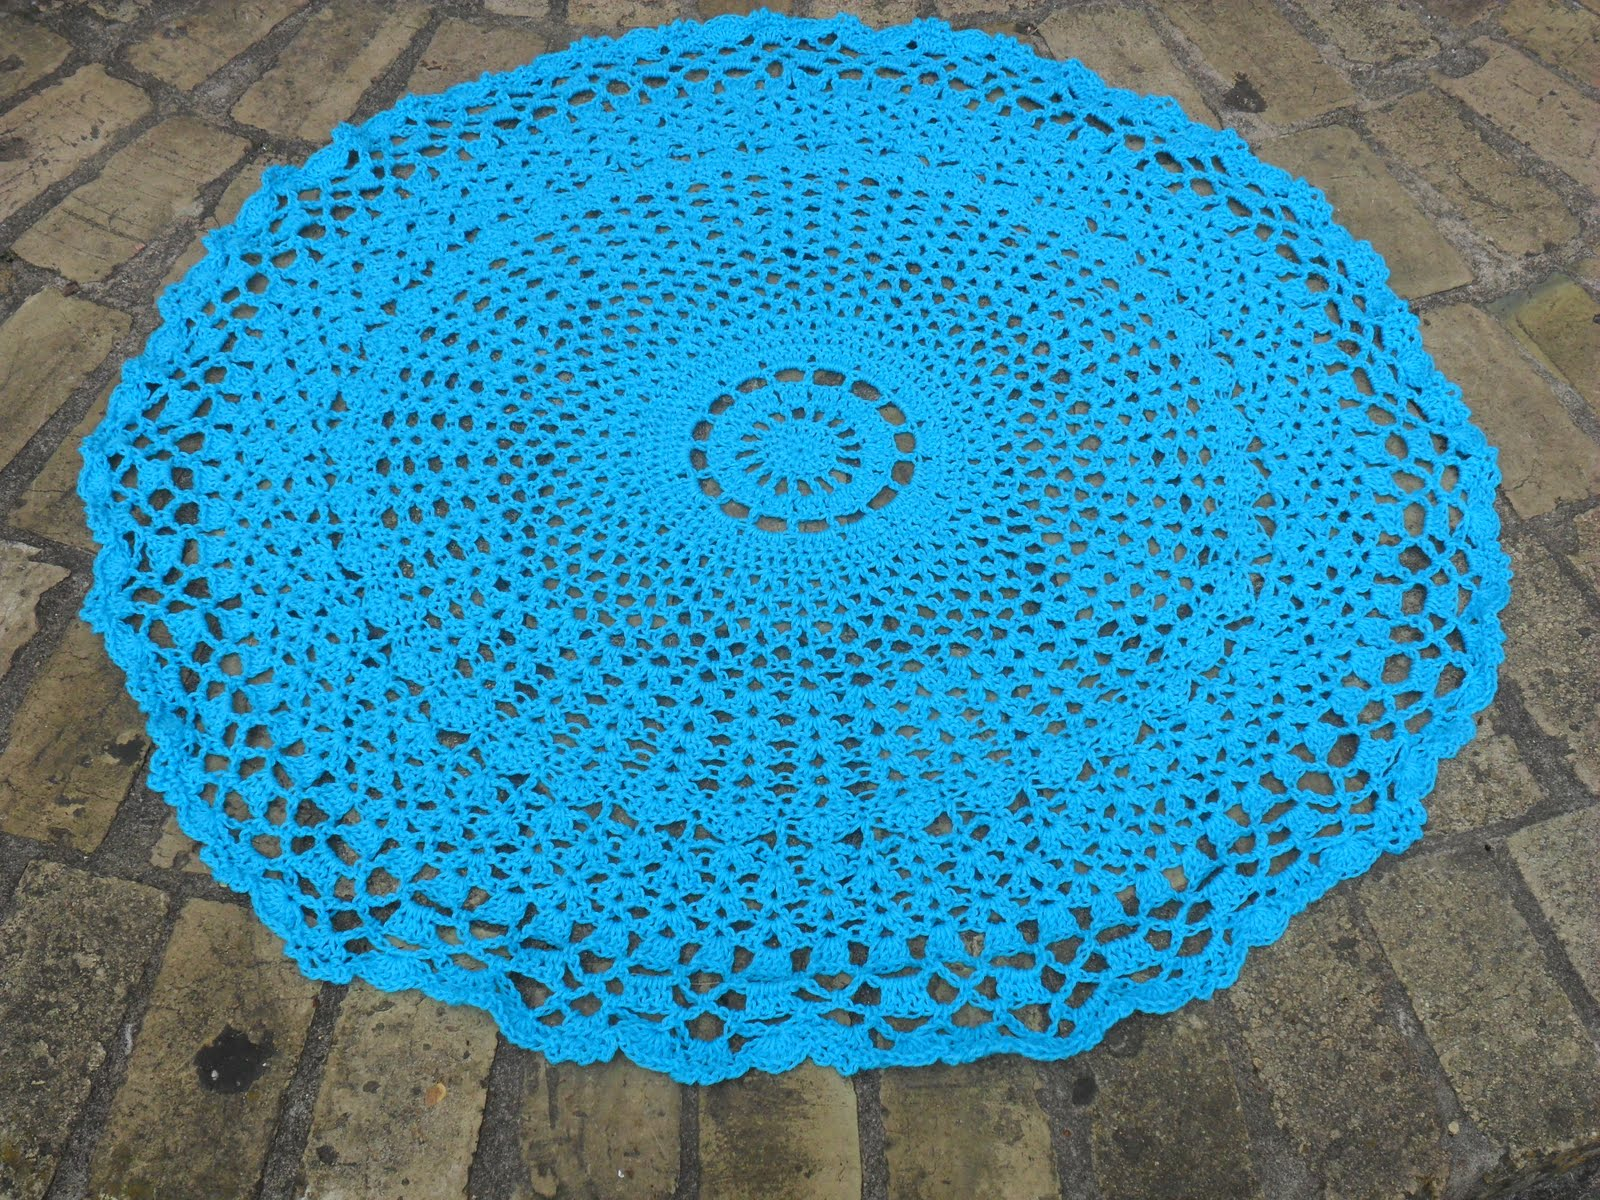 Knitting Pattern For Round Baby Shawl : Valis Crochet Moment: New Pattern for Valis Circular Crochet Shawl